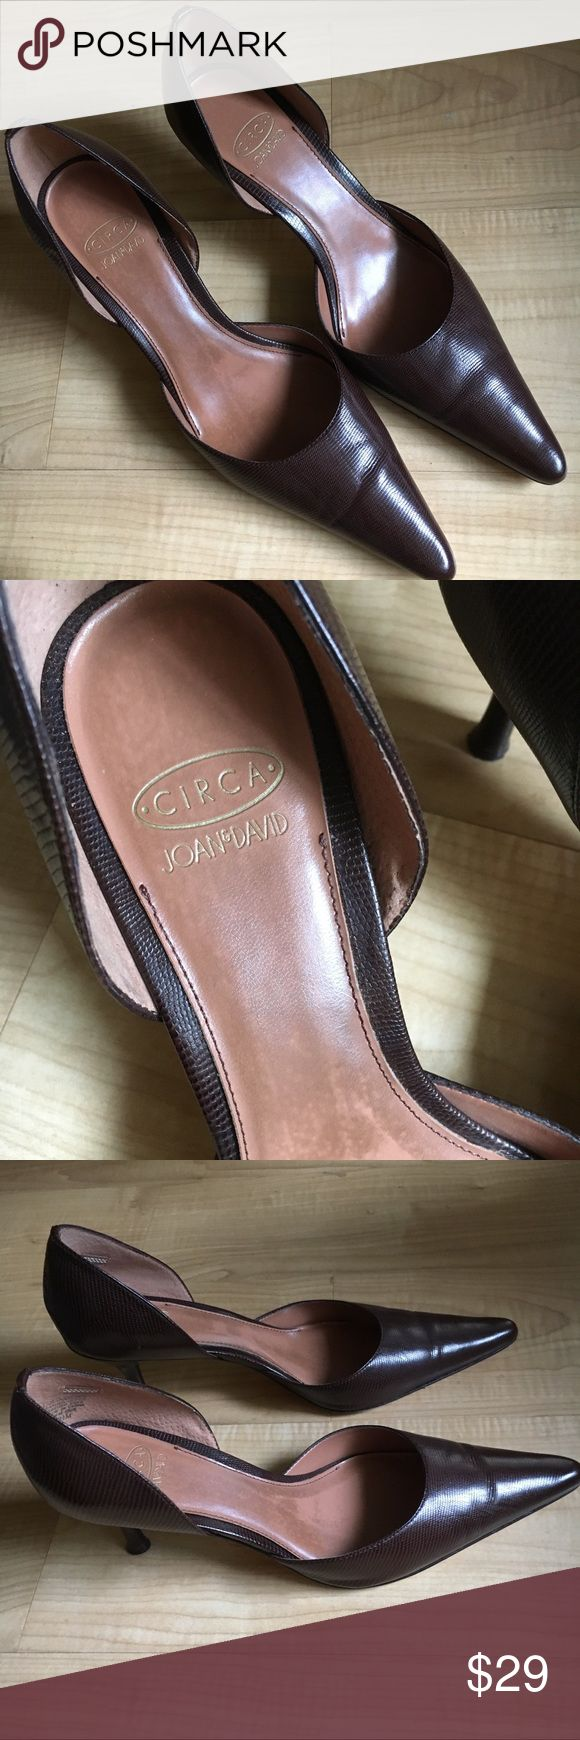 Circa Joan & David Brown Leather Point Heels Fashionable and comfy brown pointed leather heels from Circa Joan & David. In great condition other than the wear on the bottom. Circa Joan & David Shoes Heels